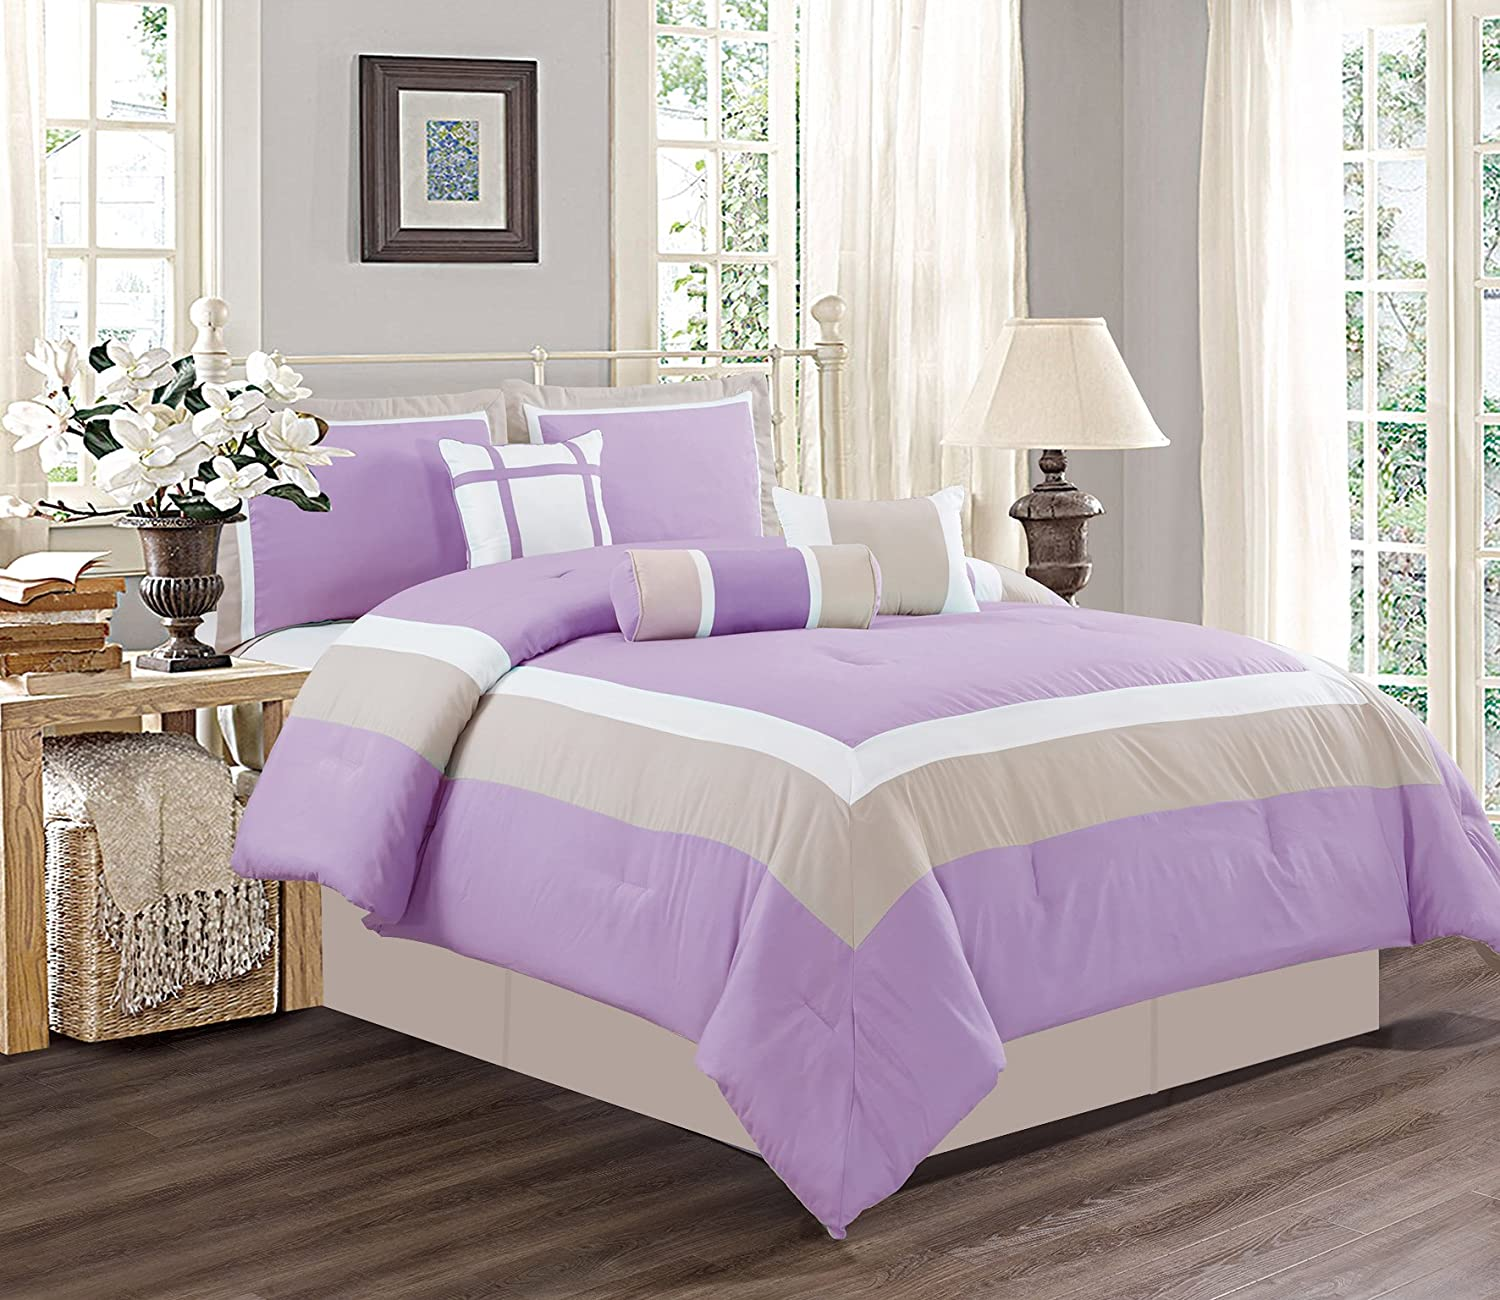 7 Piece KING Size LILAC PURPLE / WHITE / GREY Color Bedding Set